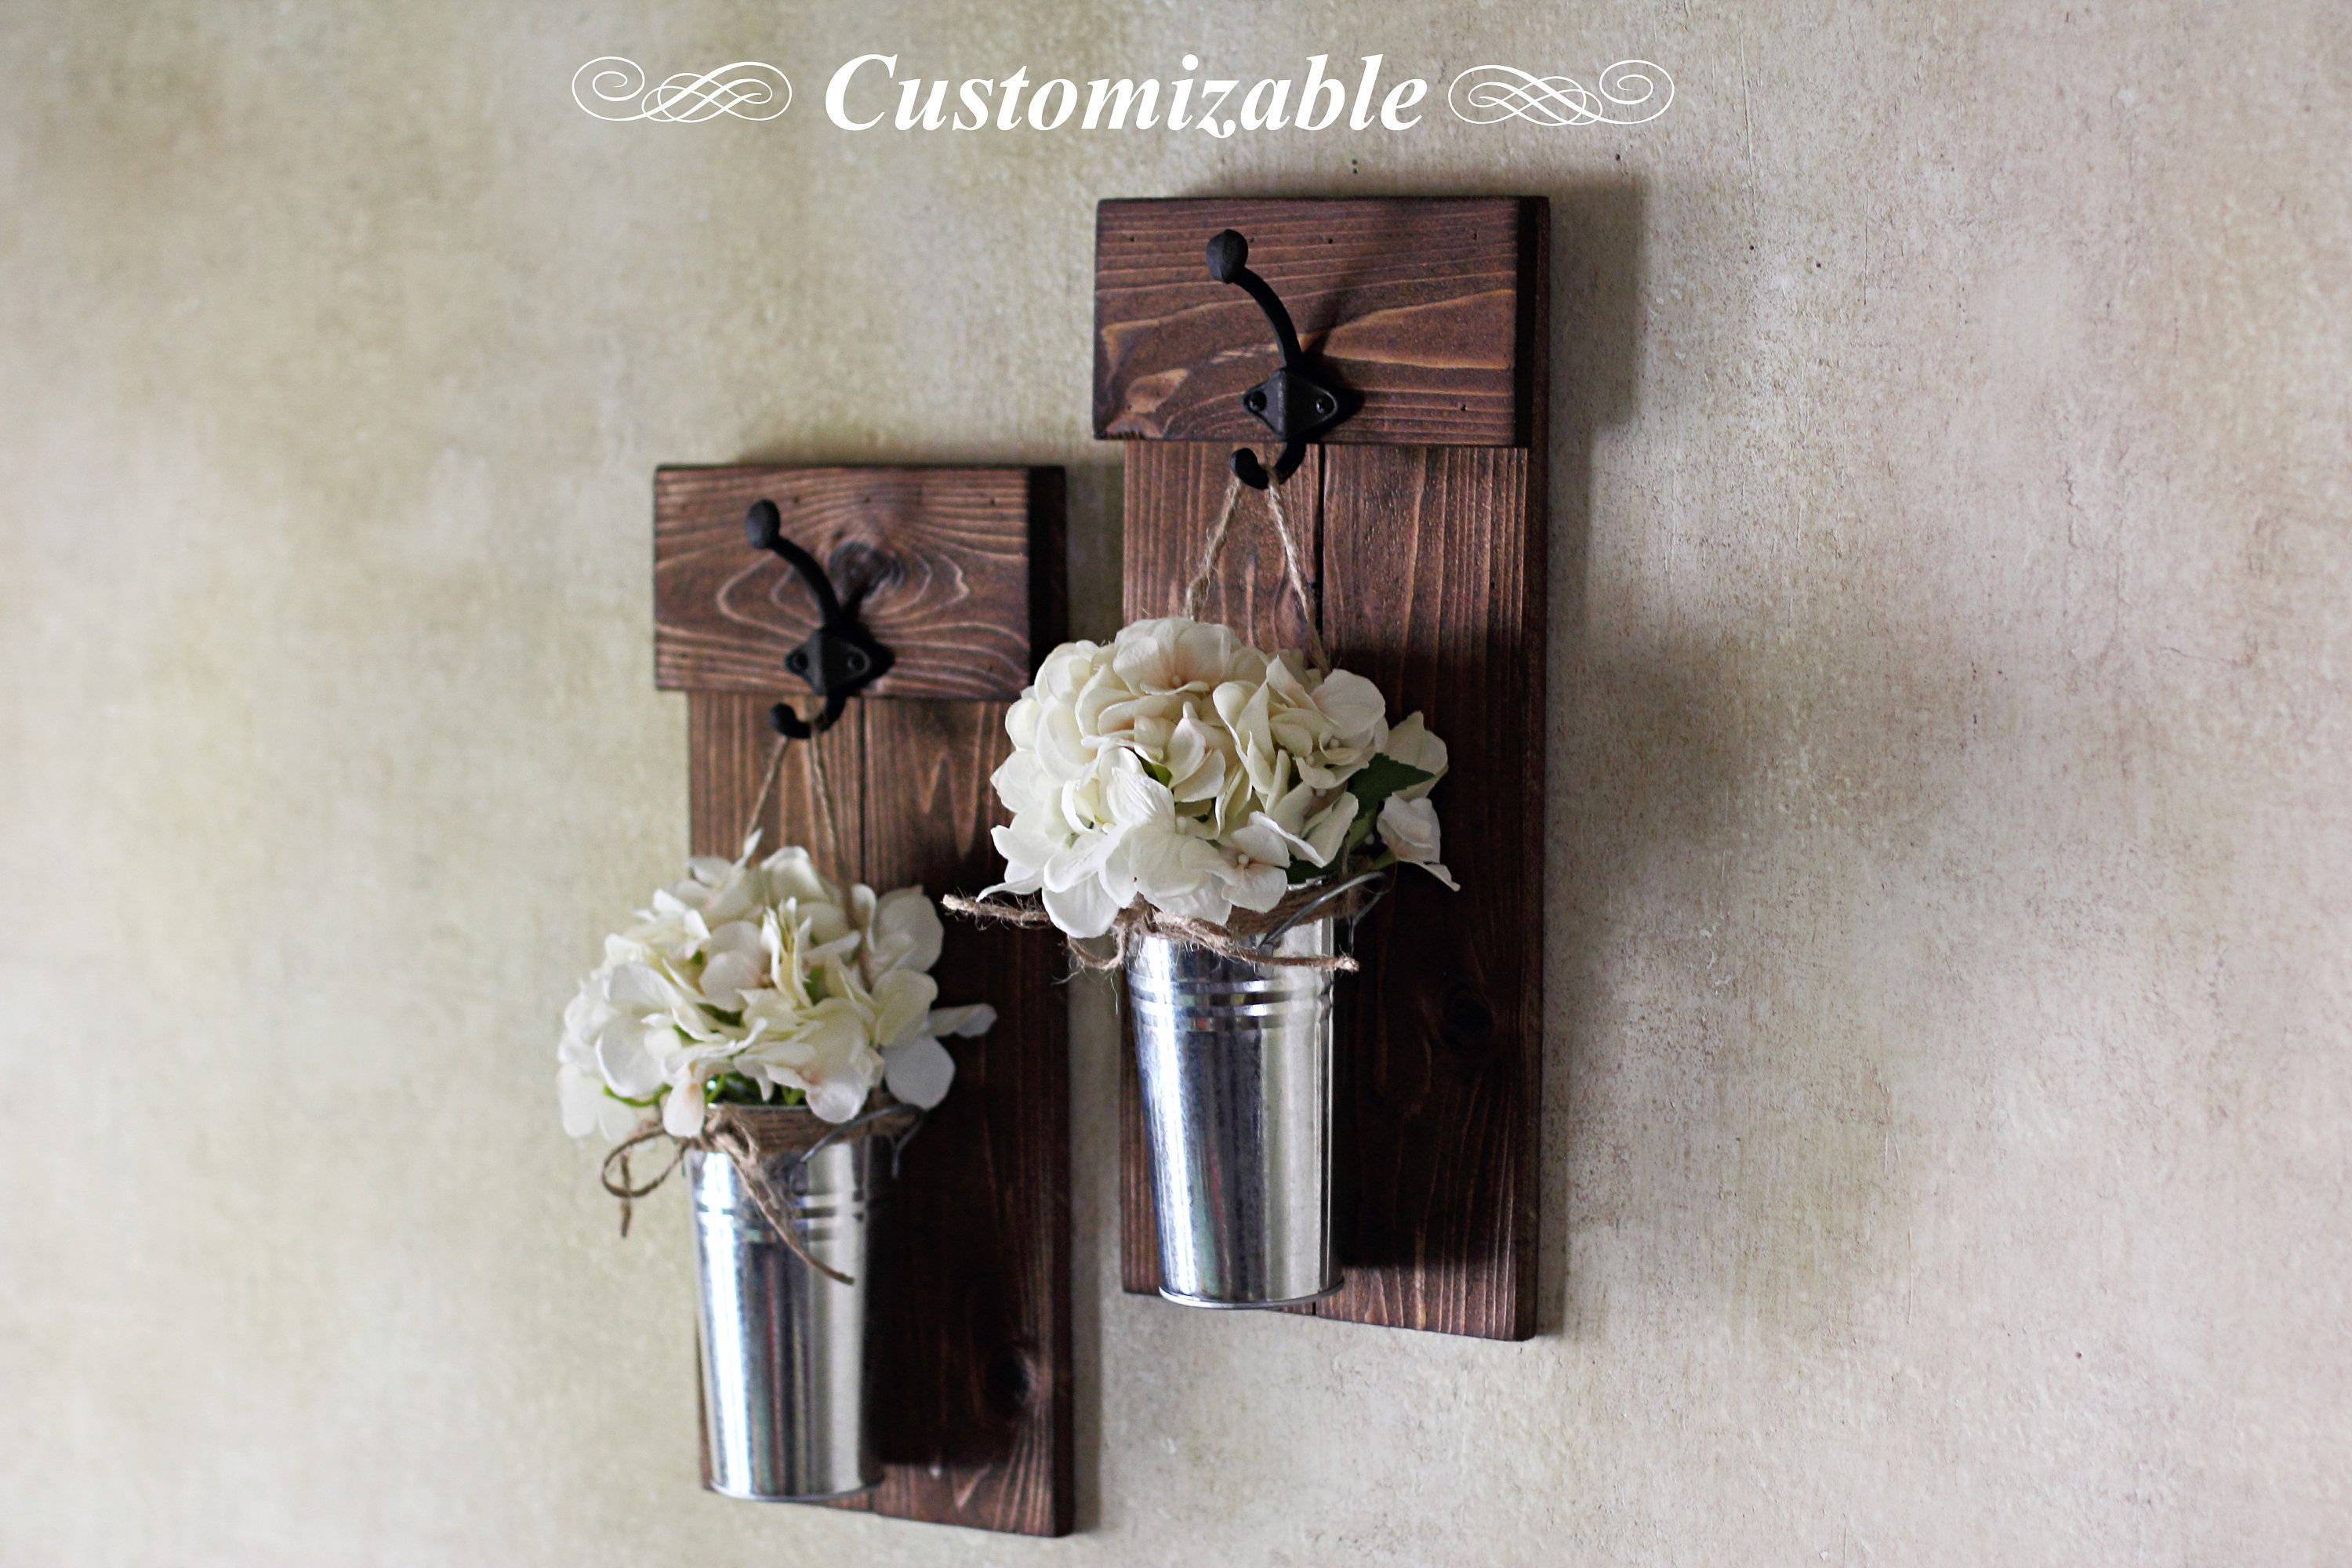 Farmhouse Decor, Wall Sconce Set, Rustic Wall Decor, Metal Wood